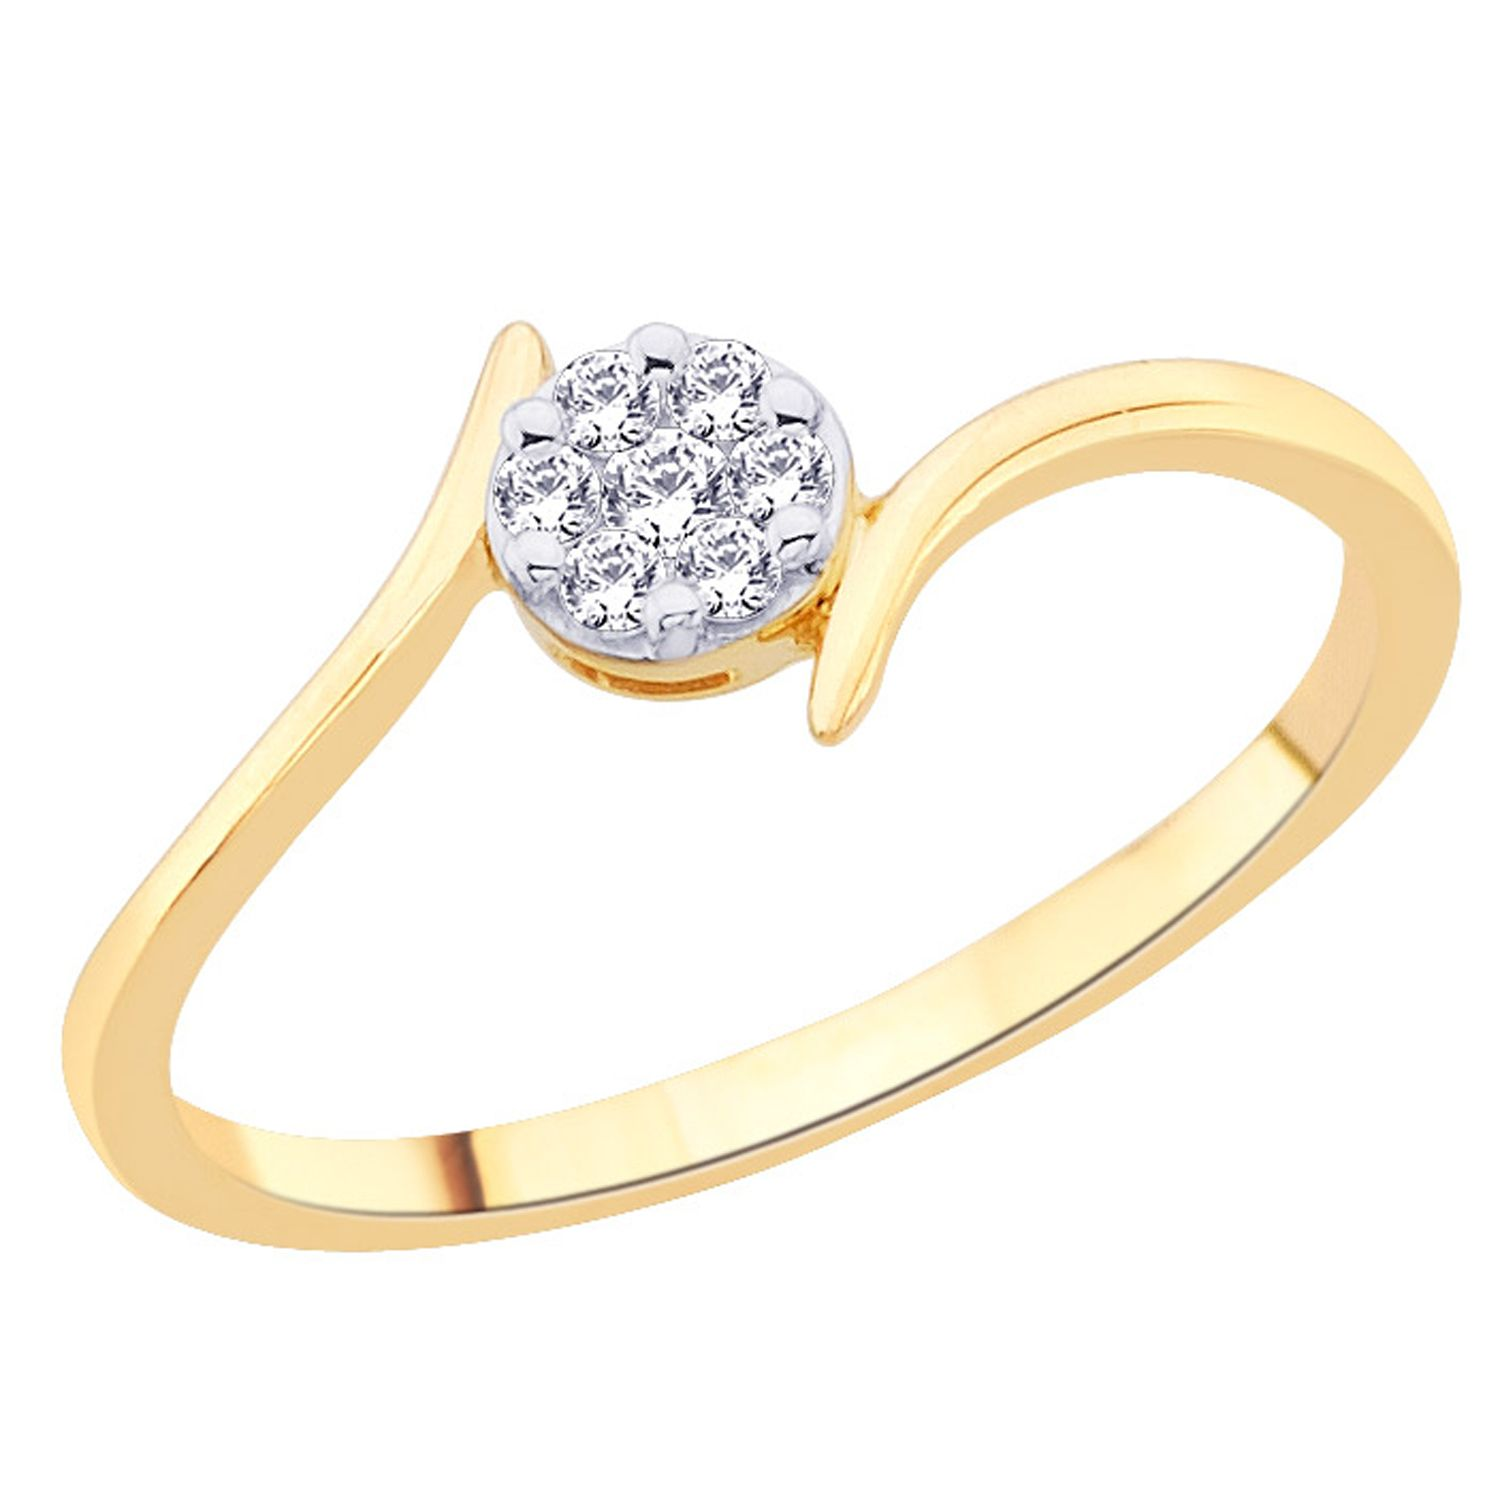 this rings diamonds jewellery the sparkling row round diamond pin of a gold more as ring seven features centerpiece